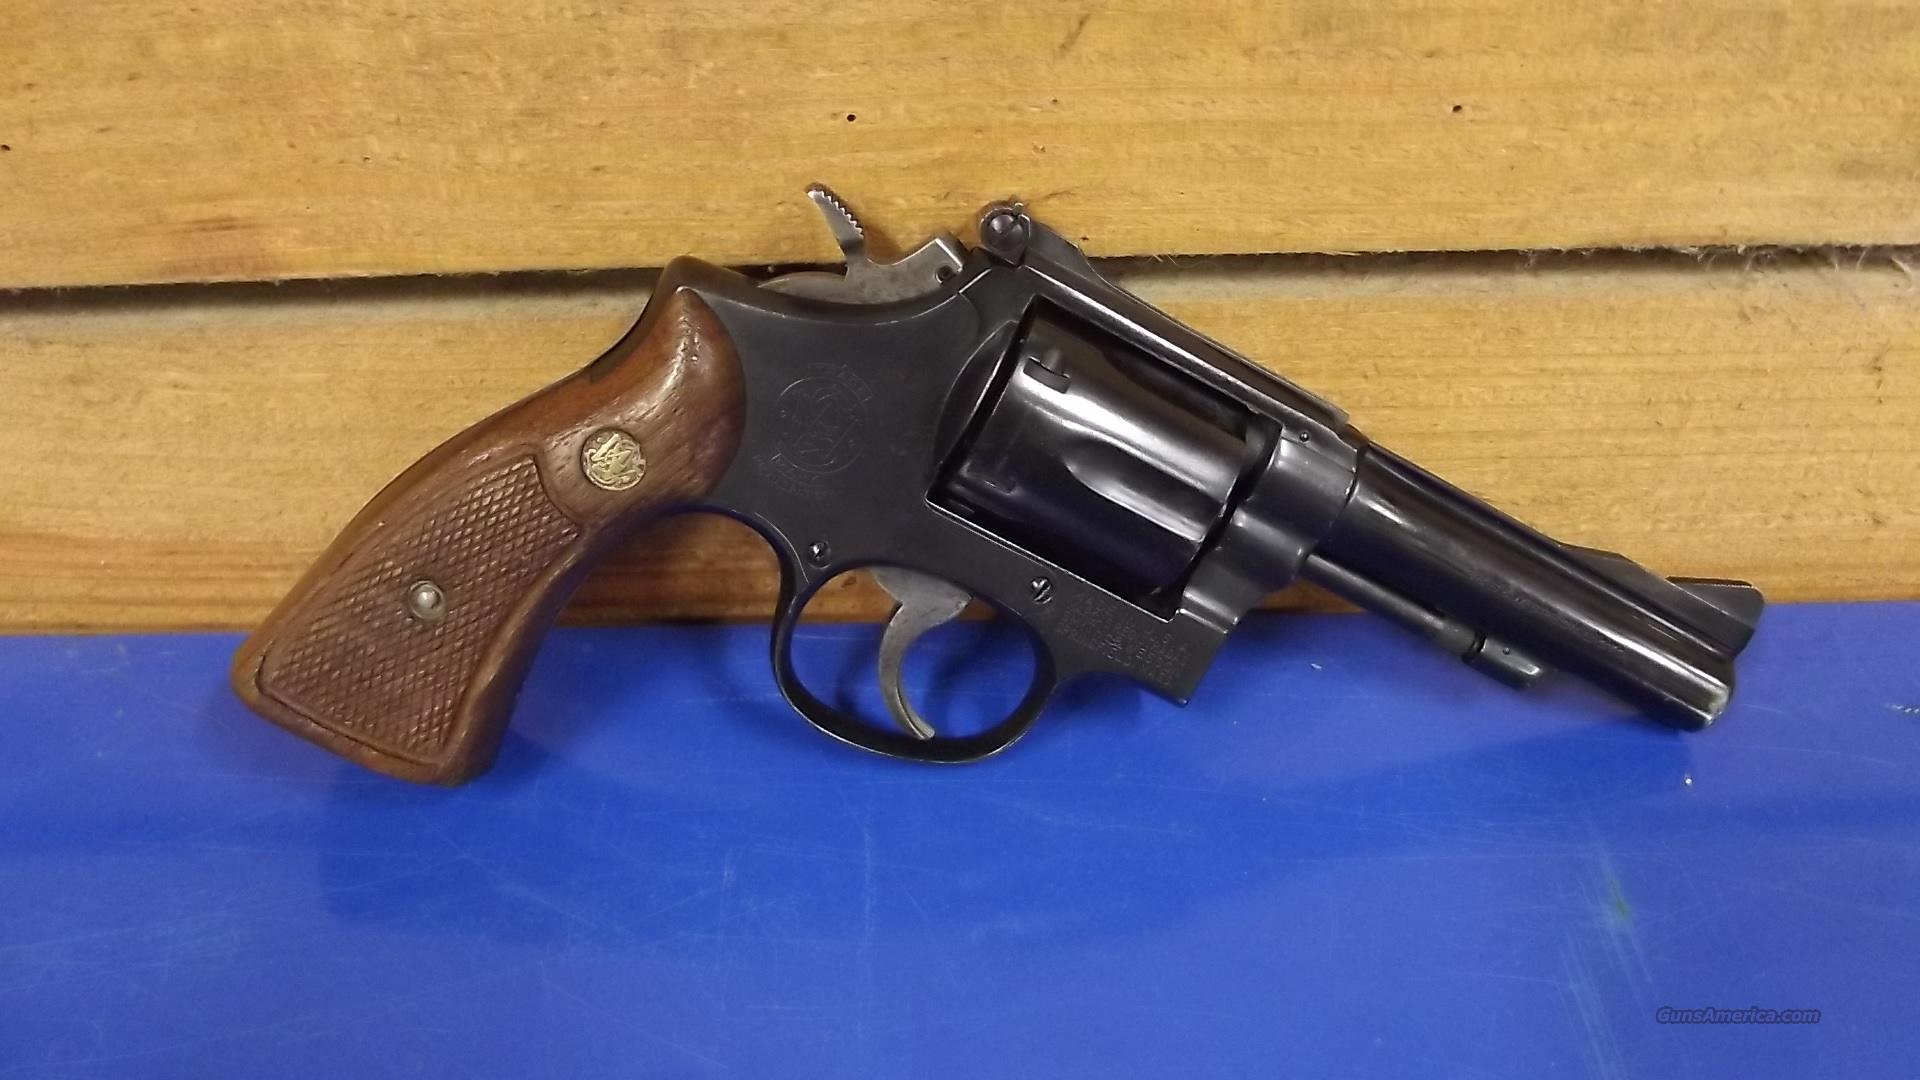 SMITH WESSON 15-3    38 SPECIAL  Guns > Pistols > Smith & Wesson Revolvers > Full Frame Revolver